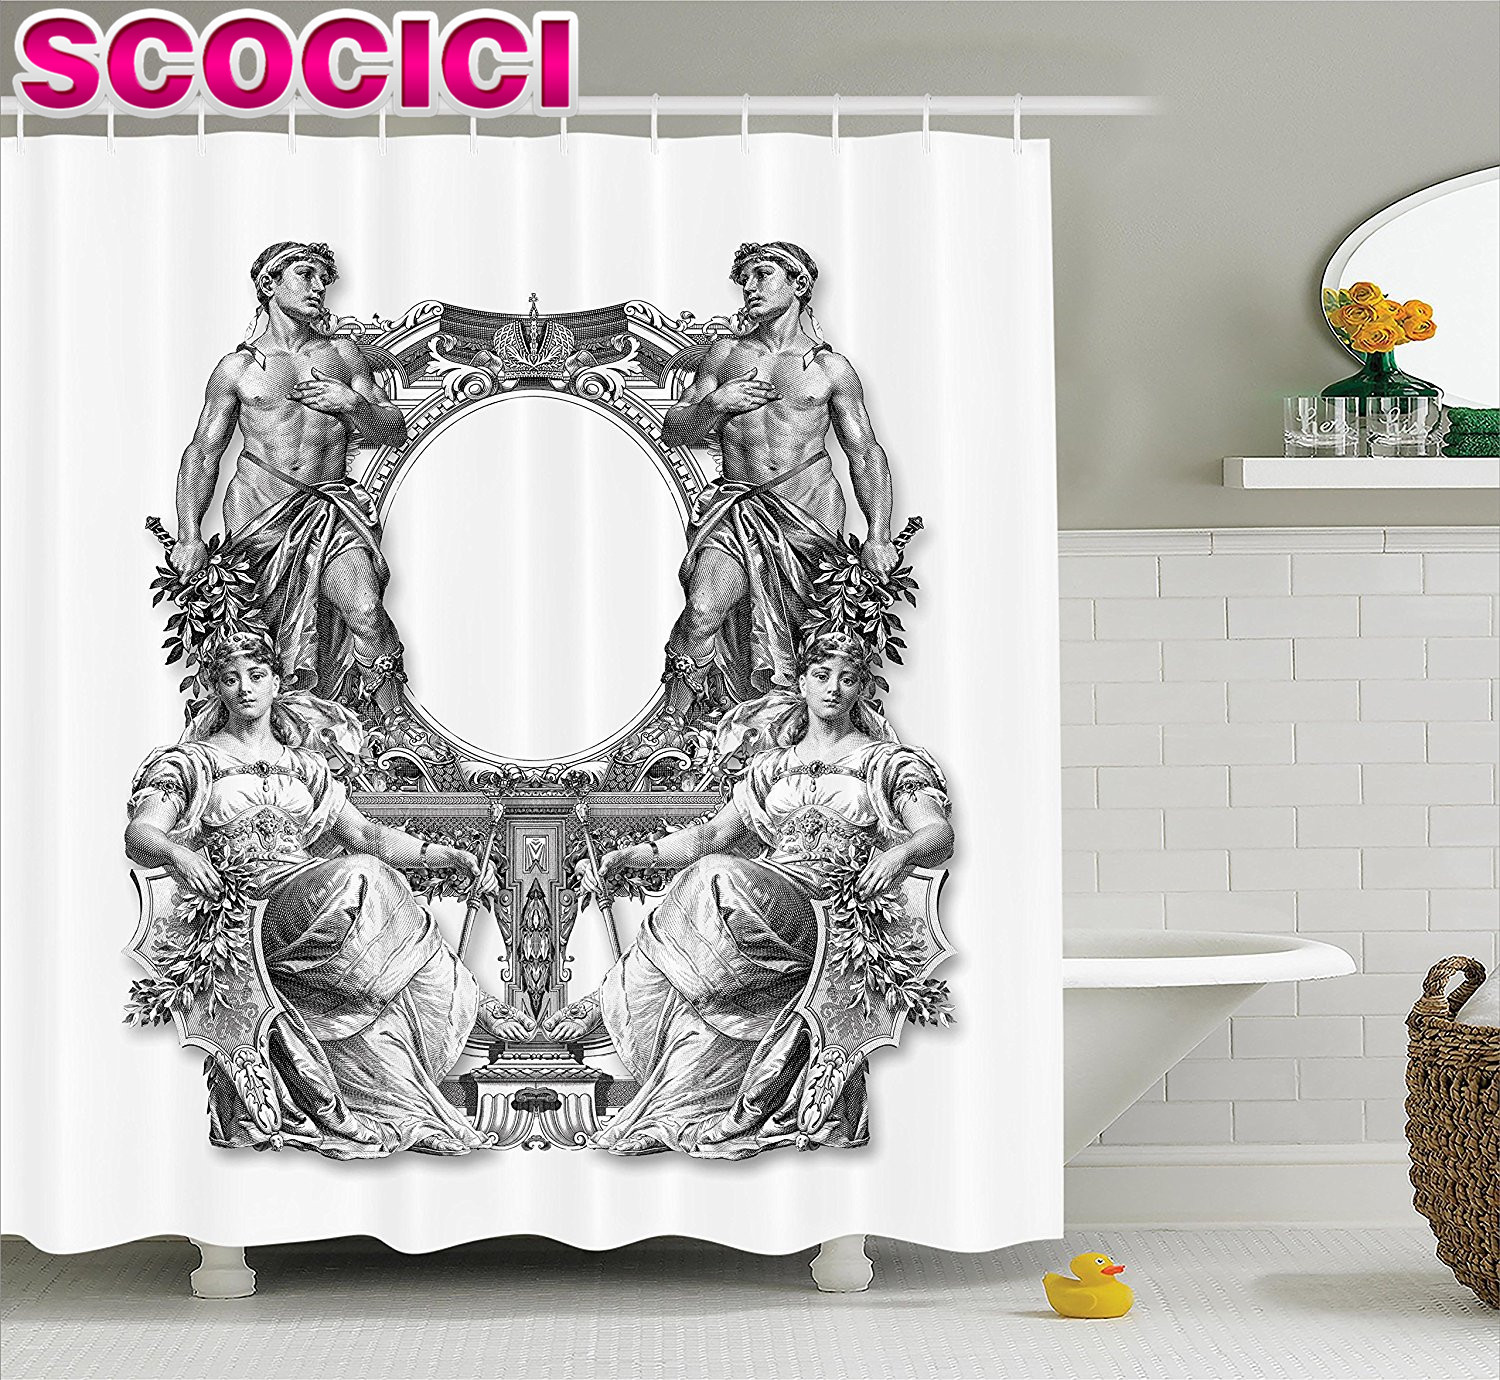 Victorian Decor Shower Curtain Set Old Victorian Frame Two Man And Two  Woman Ancient Baroque Crown Princess Bathroom Accessories. Princess Bathroom Accessories Promotion Shop for Promotional